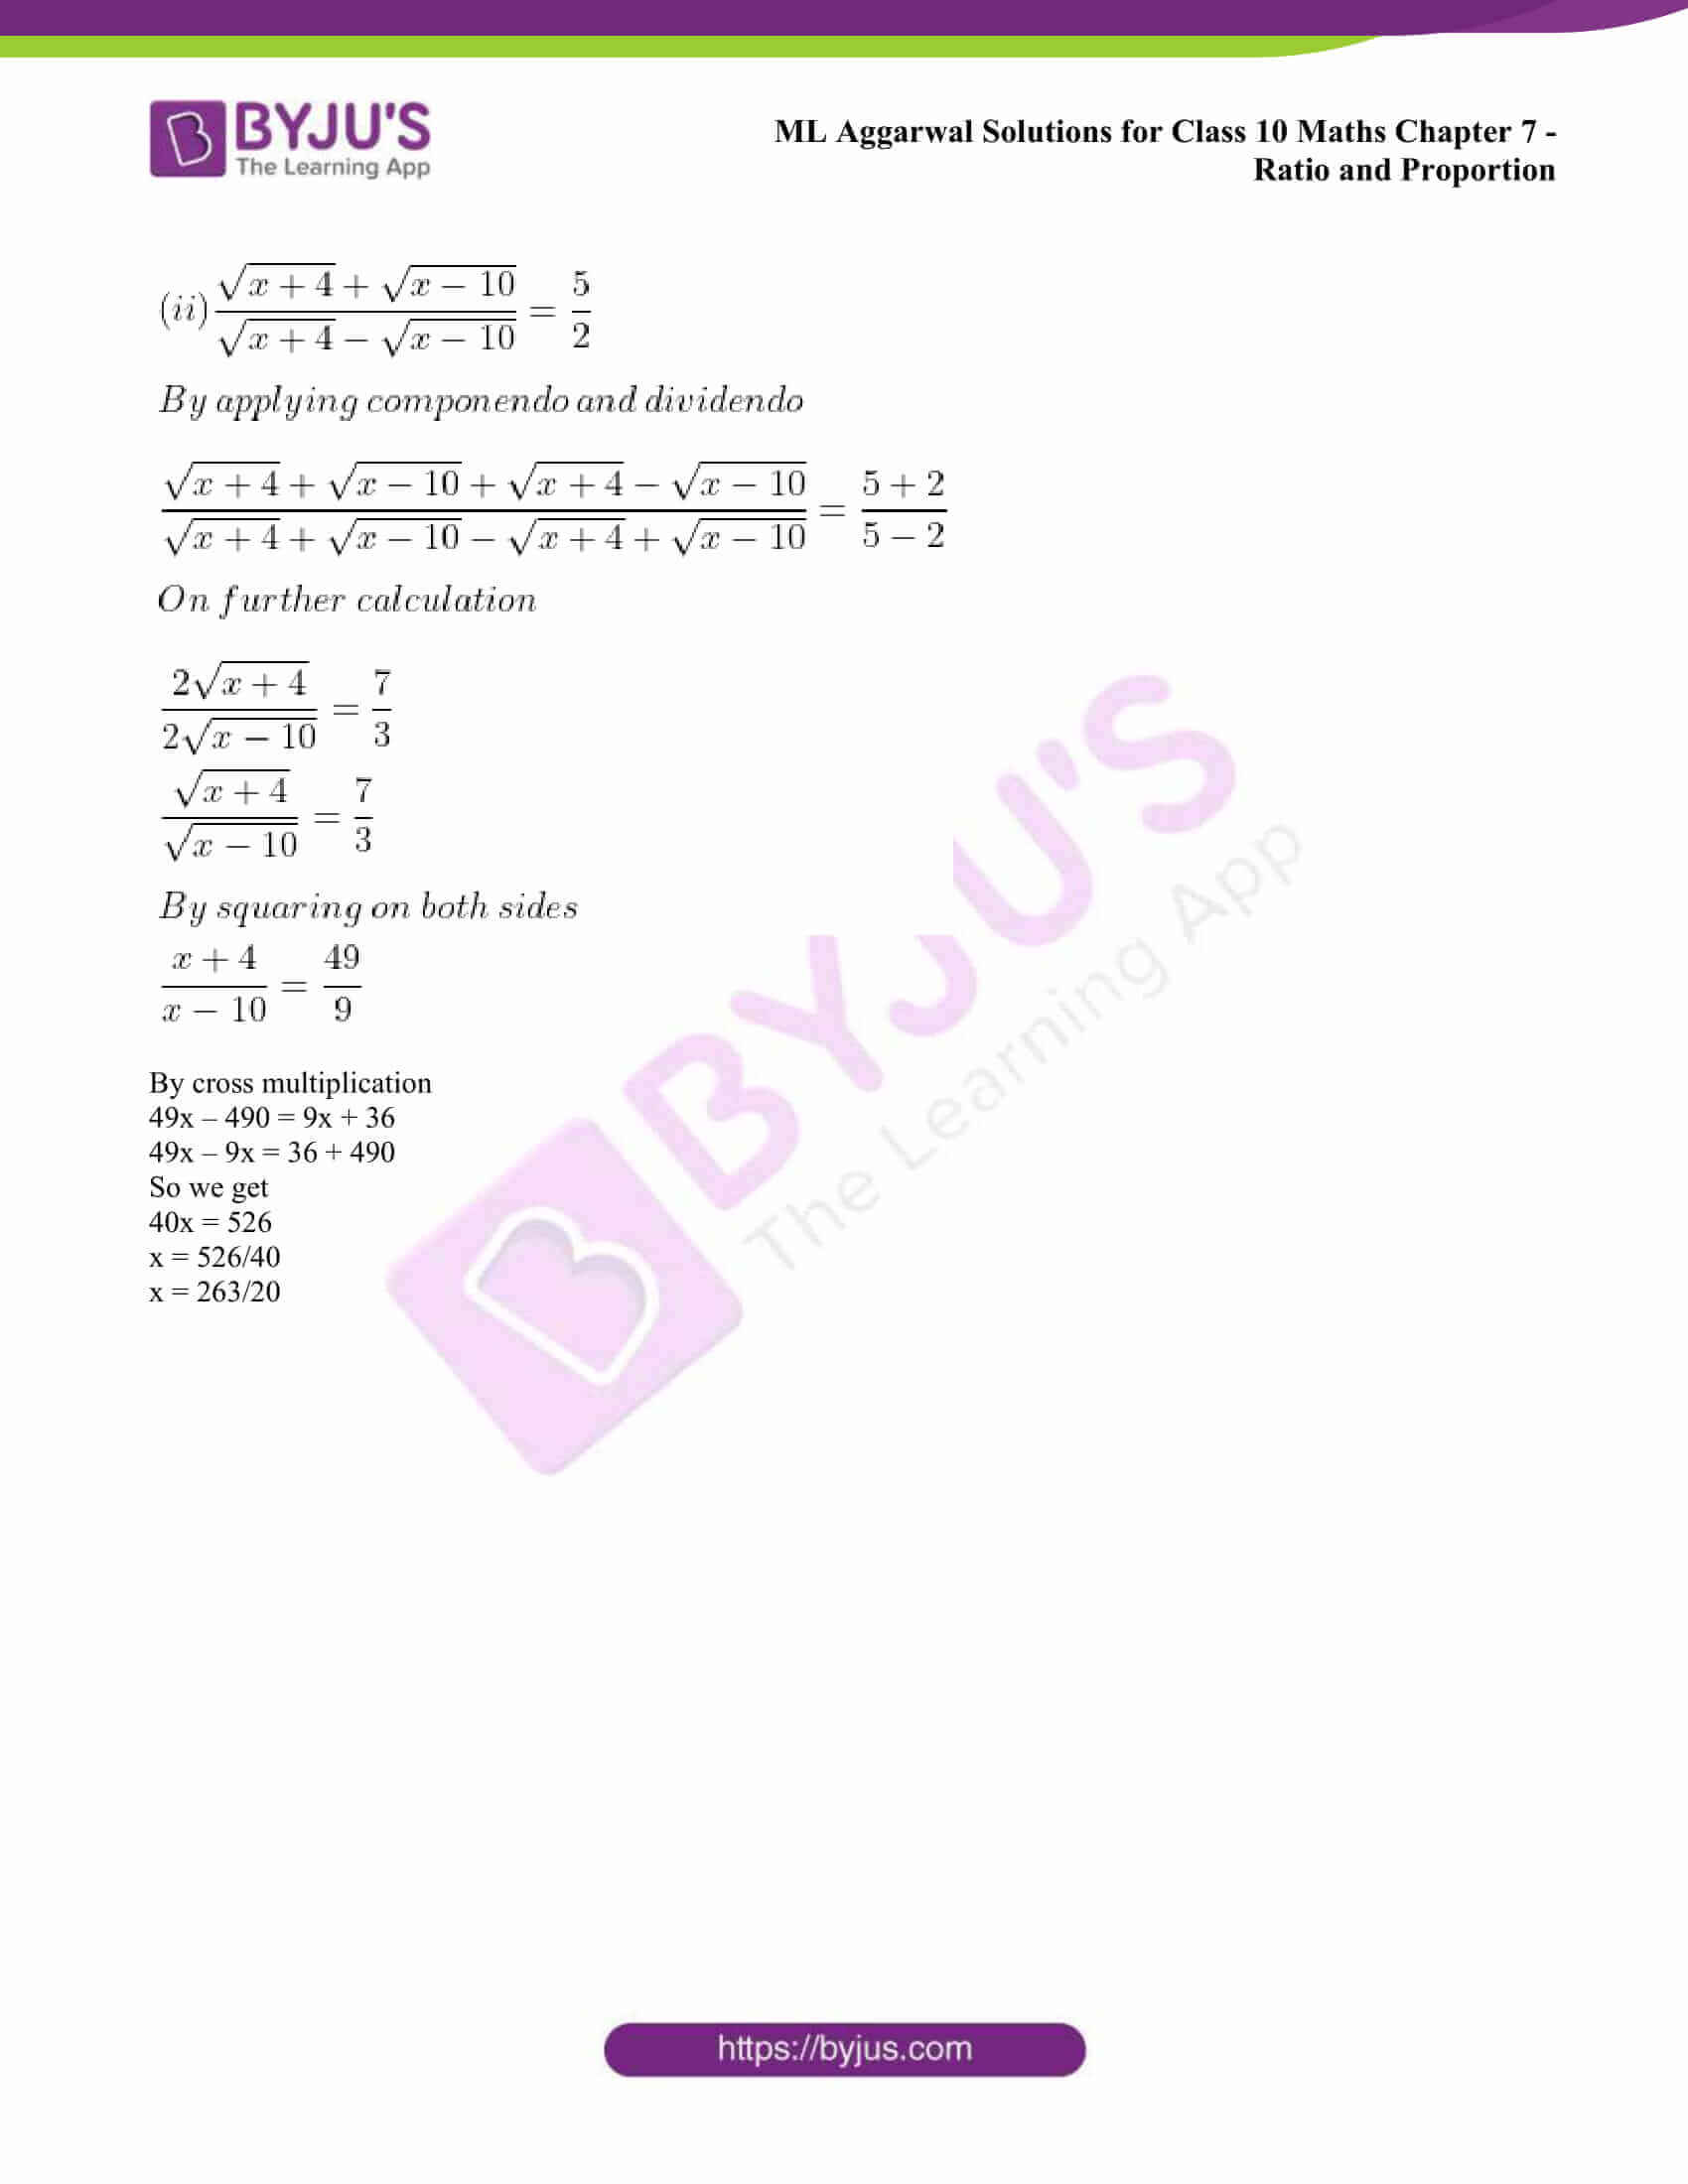 ml aggarwal solutions class 10 maths chapter 7 55